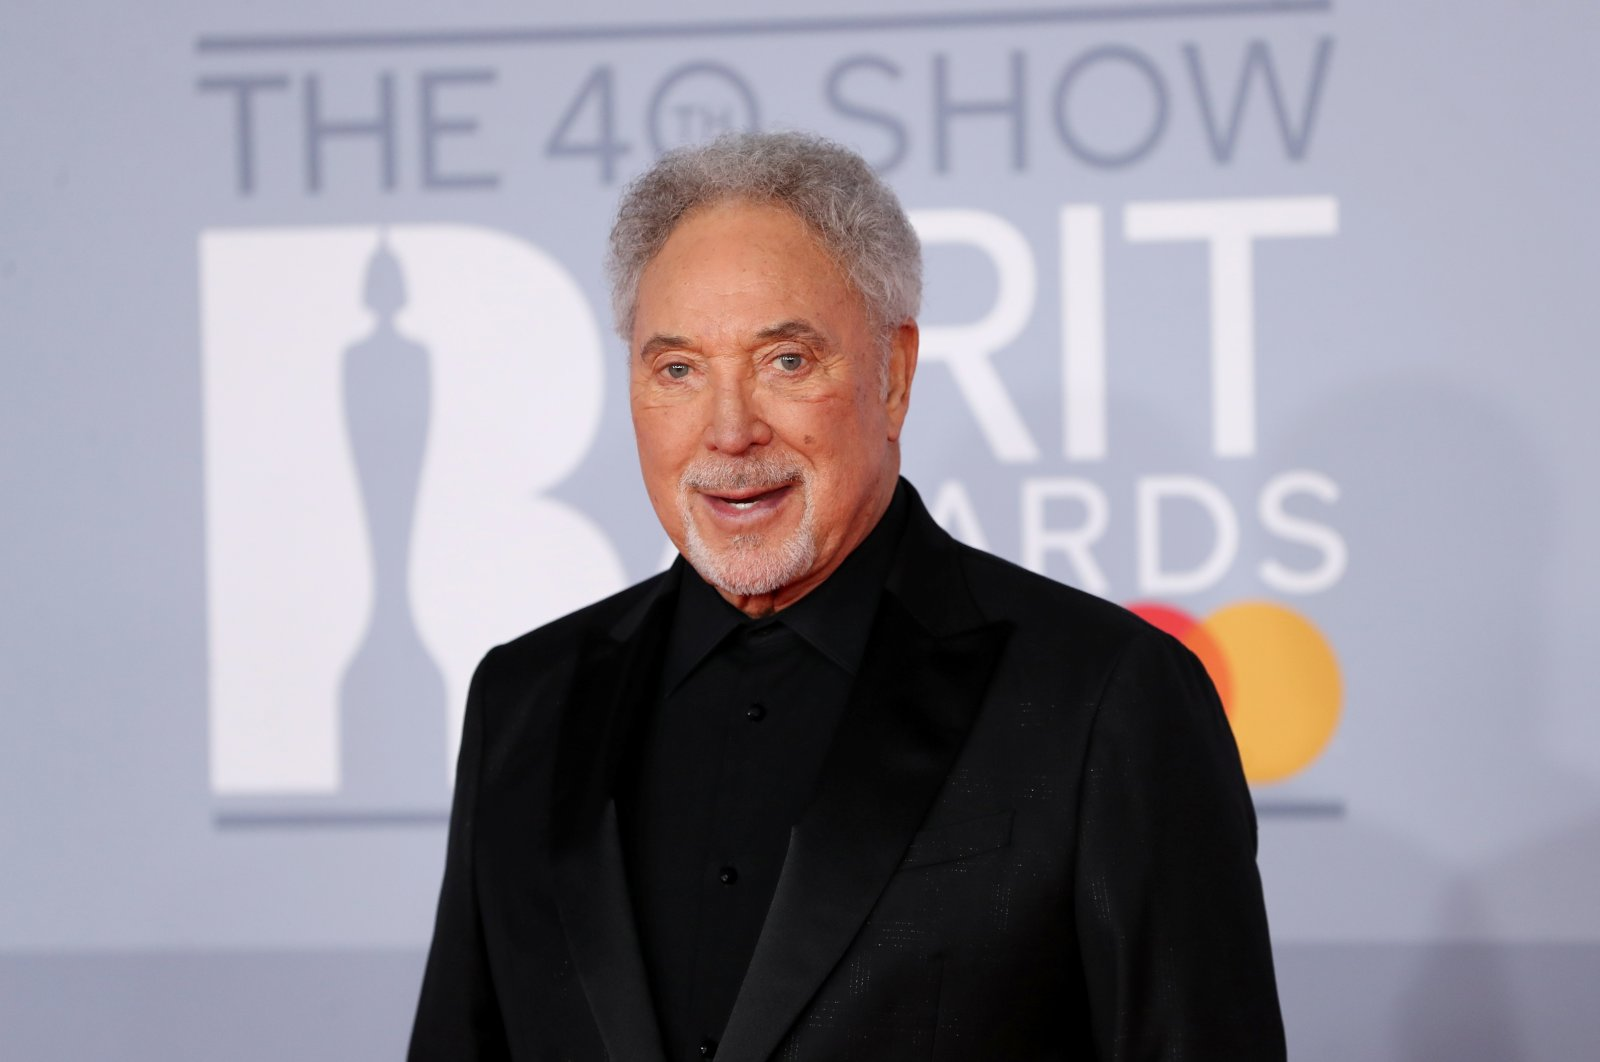 Tom Jones poses as he arrives for the Brit Awards at the O2 Arena in London, U.K., Feb. 18, 2020. (Reuters Photo)